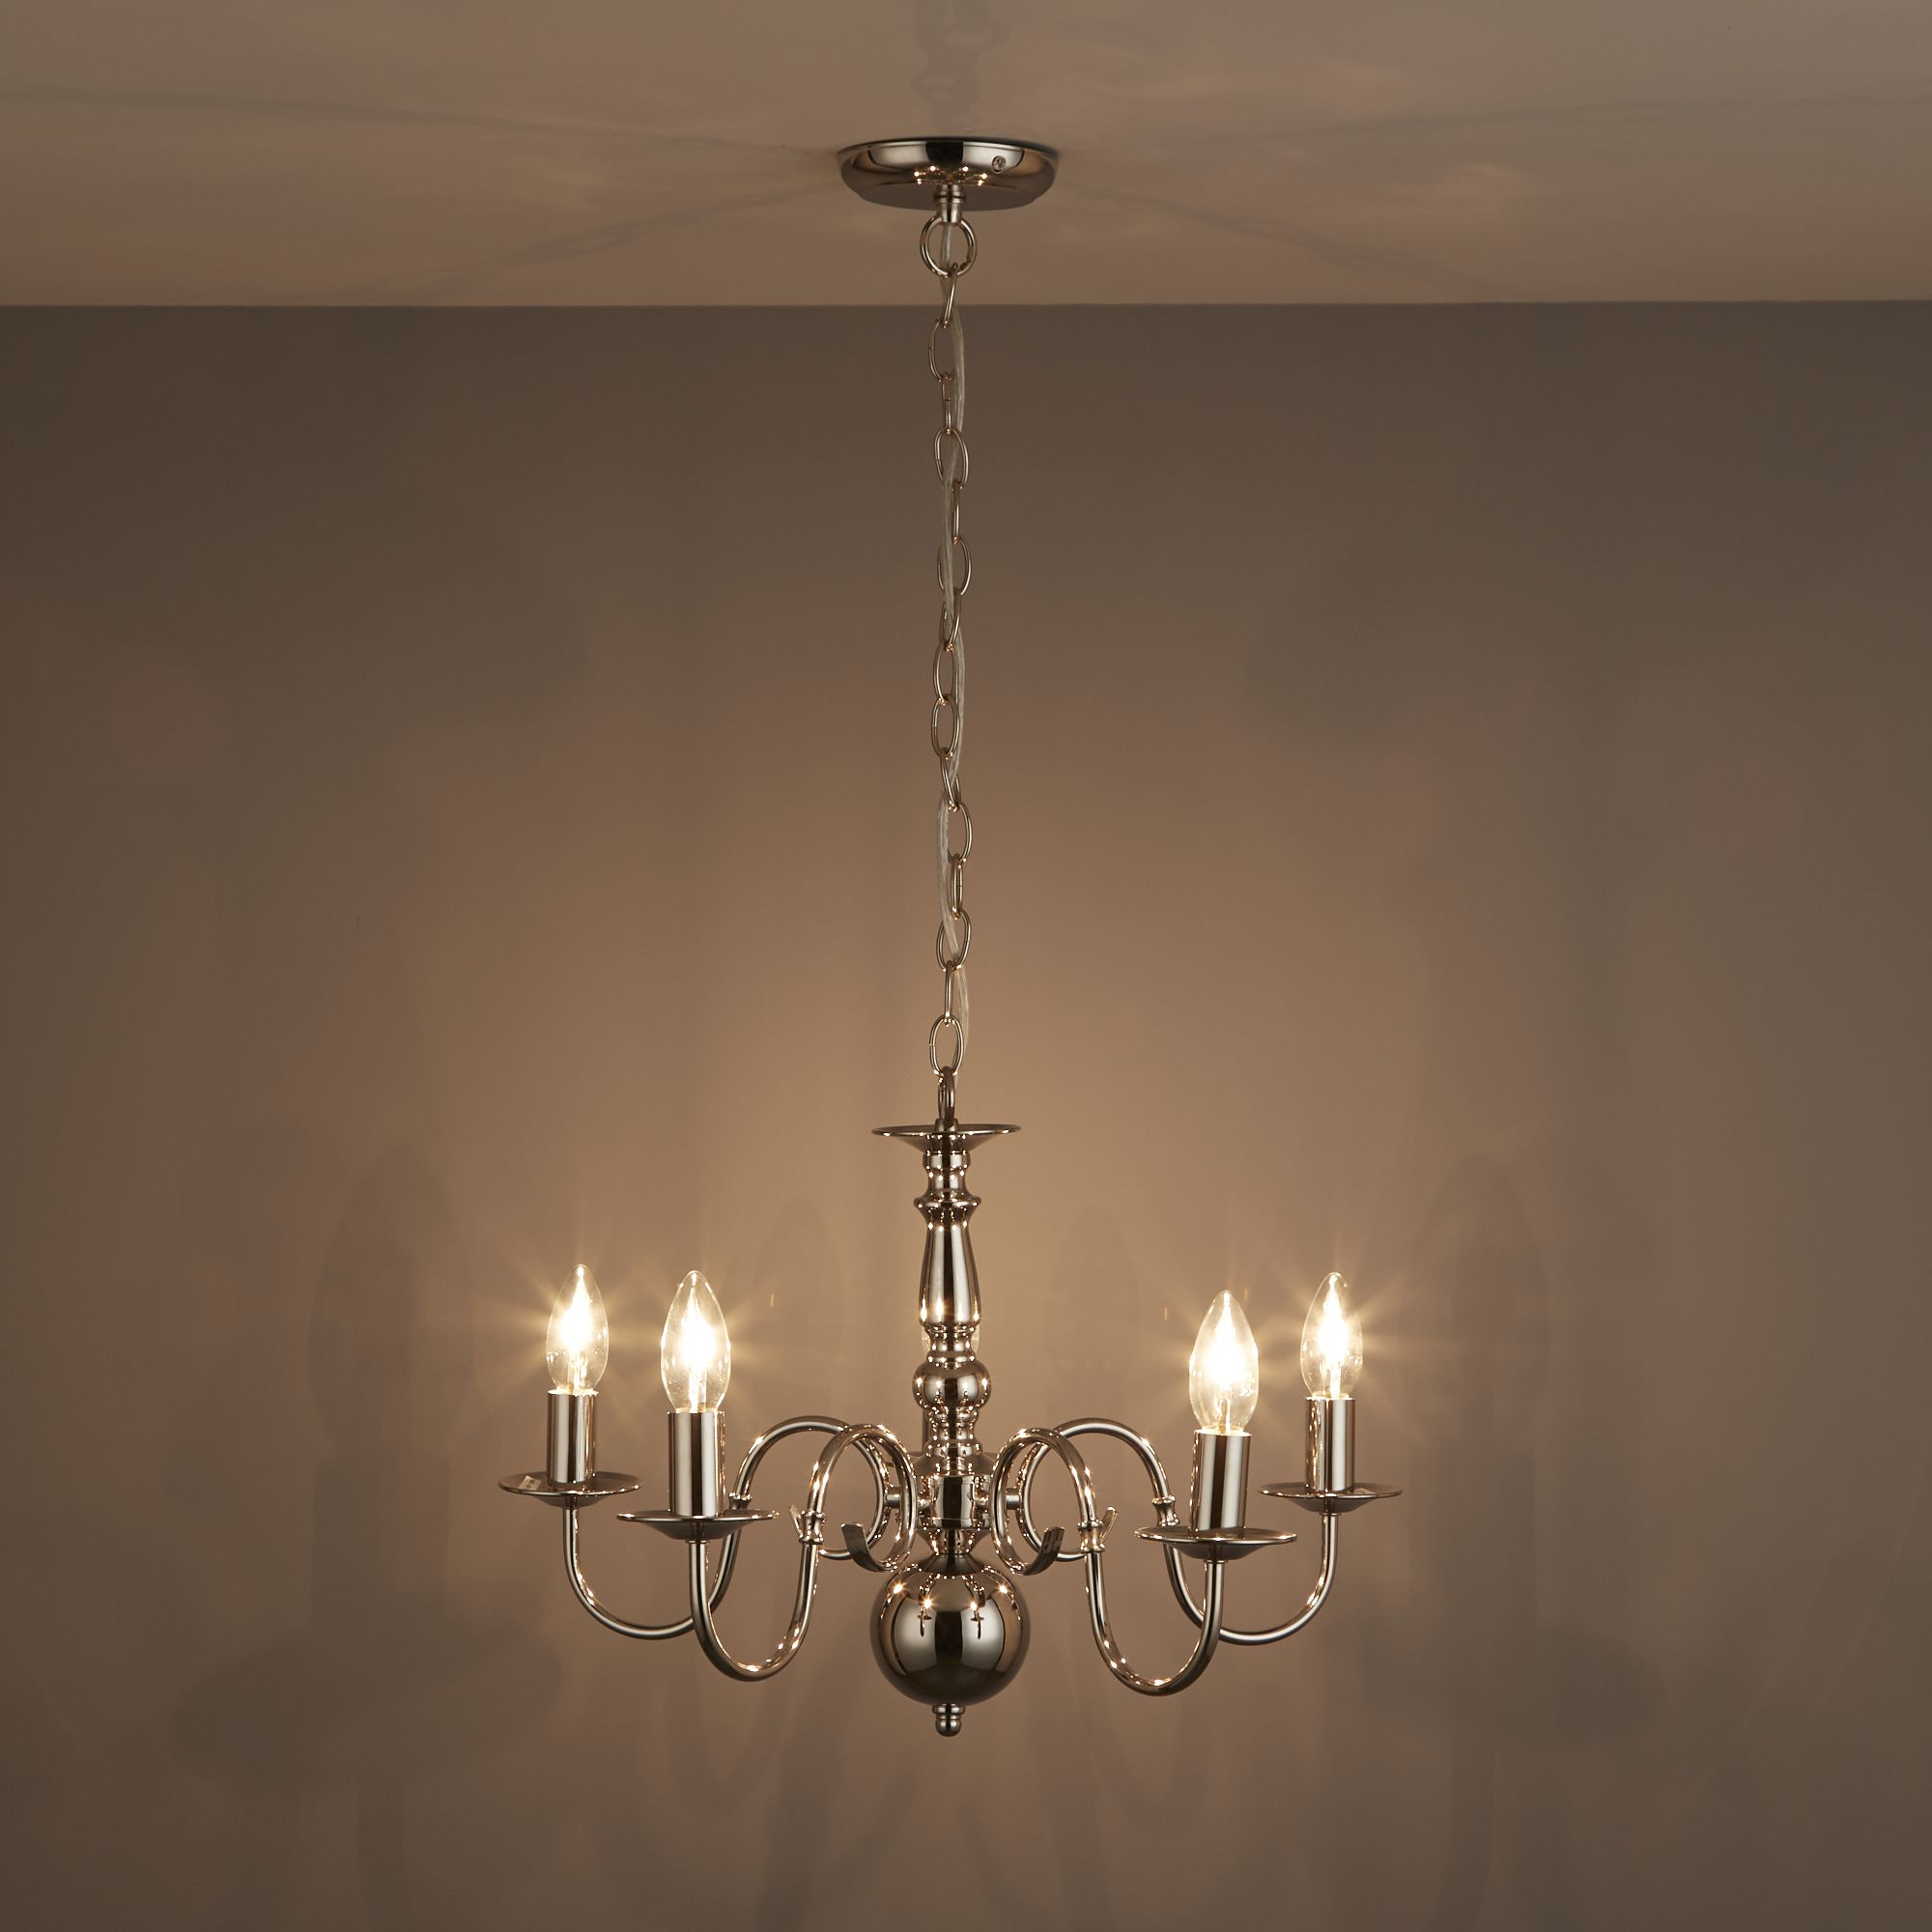 Manning Clear Polished Nickel 5 Lamp Ceiling Light